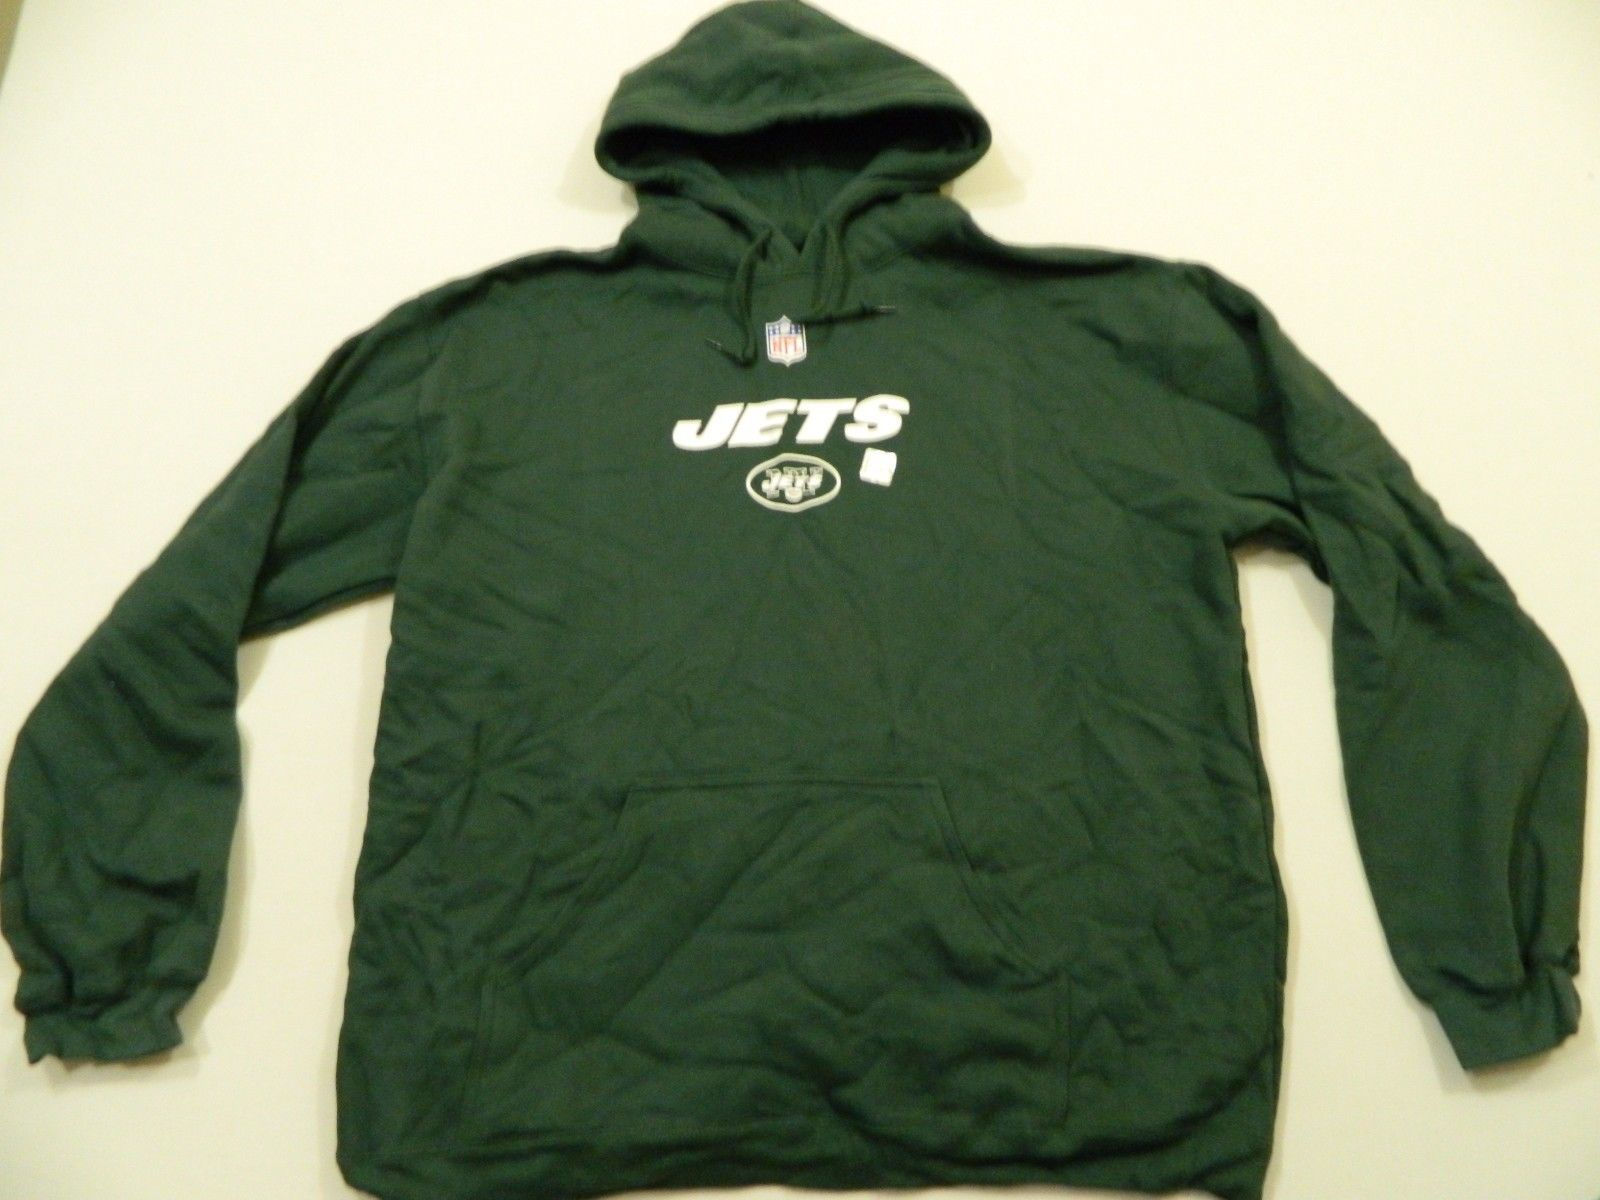 M75 NEW REEBOK New York Jets Hooded Hoodie Sweatshirt Jacket  MEN'S 2XL  - $27.67